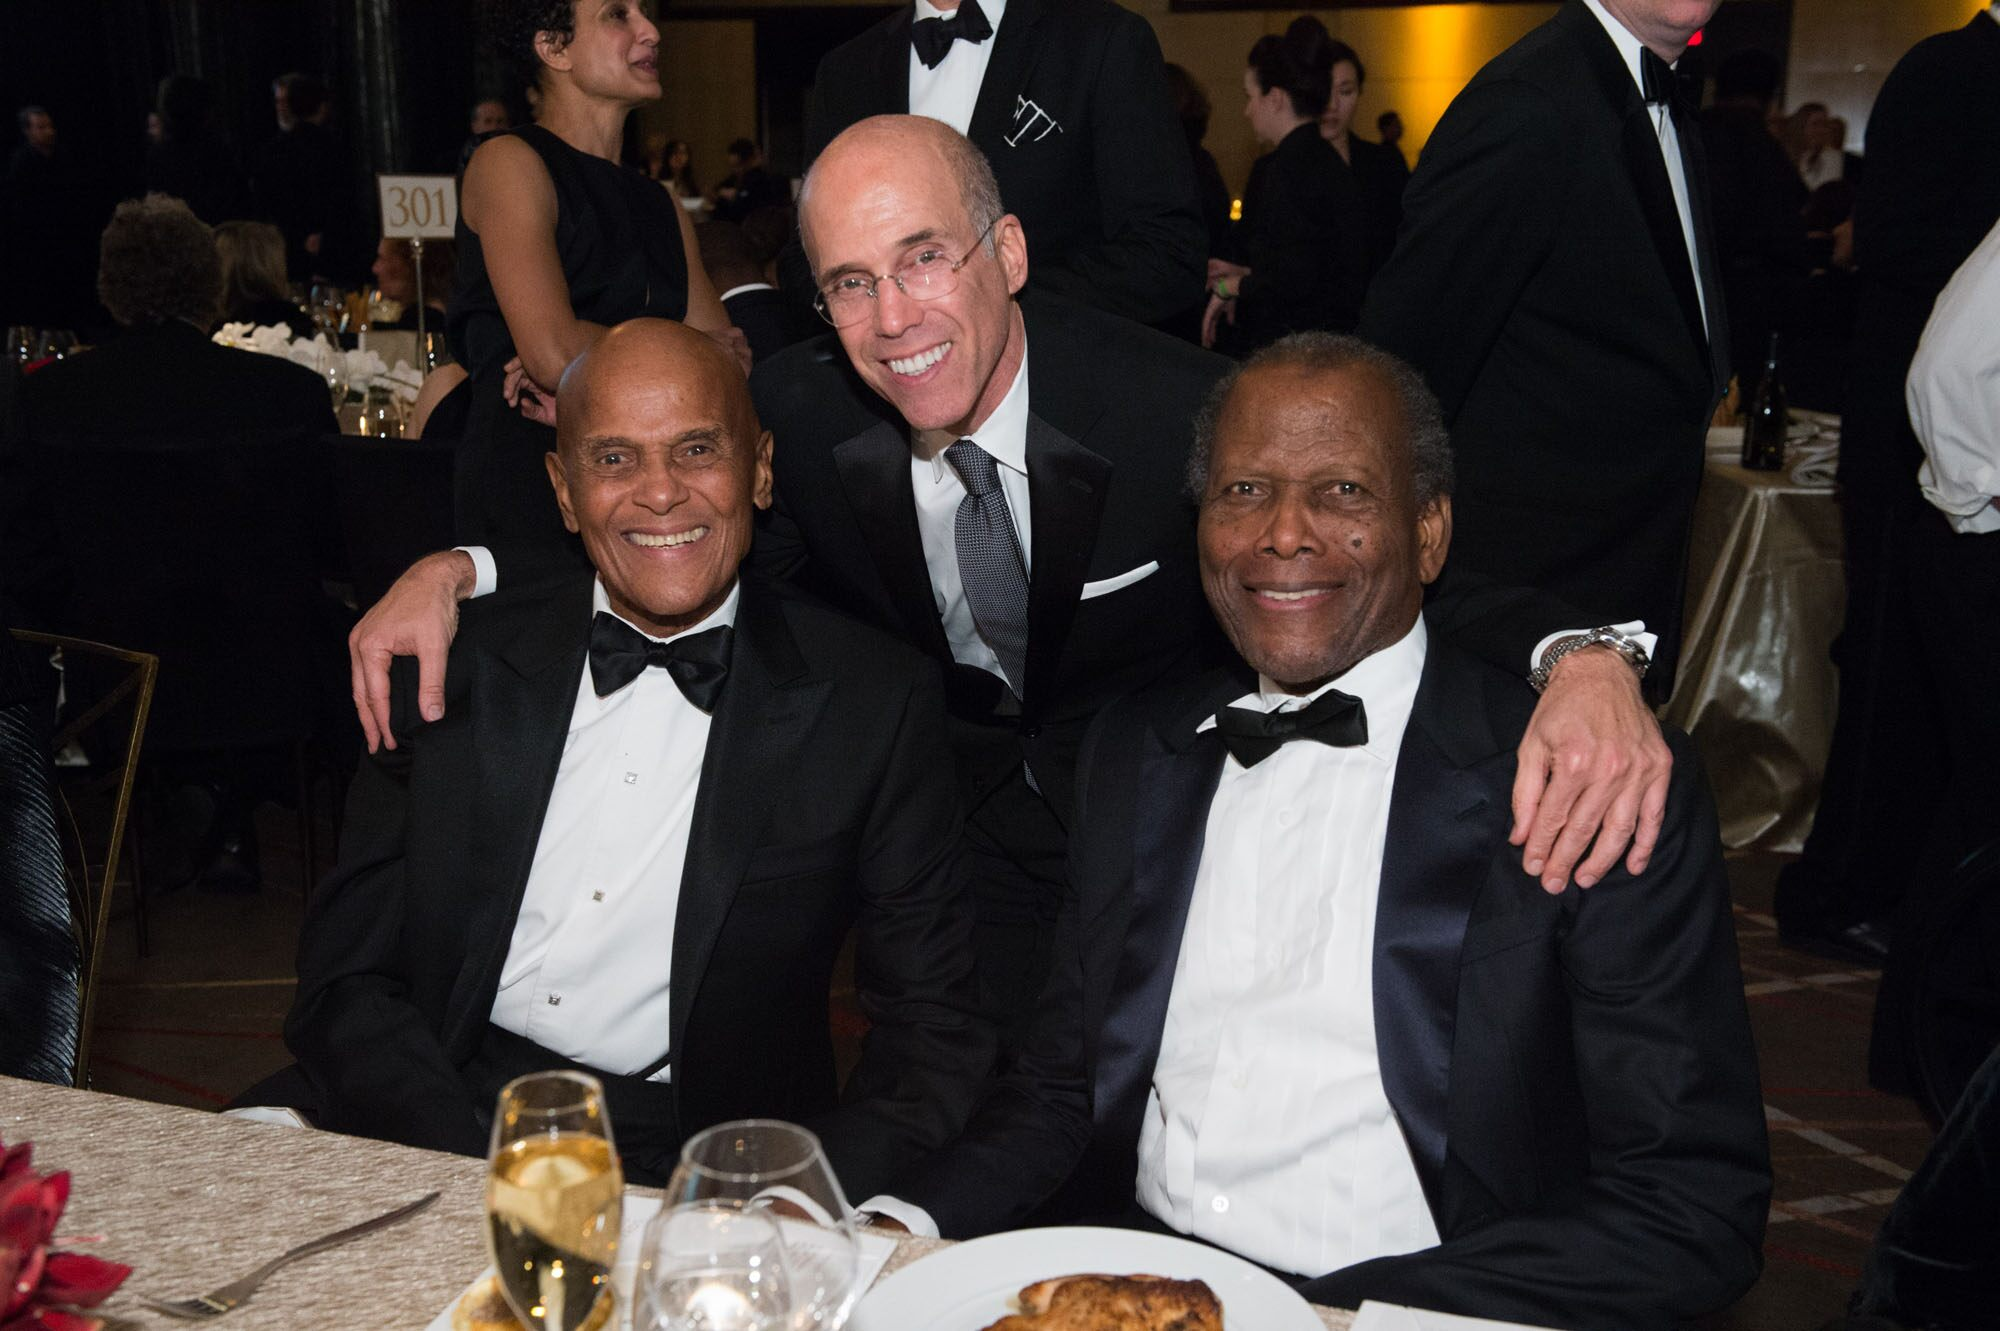 Jean Hersholt Humanitarian Award recipient Harry Belafonte (left), Jeffrey Katzenberg (center) and Sidney Poitier